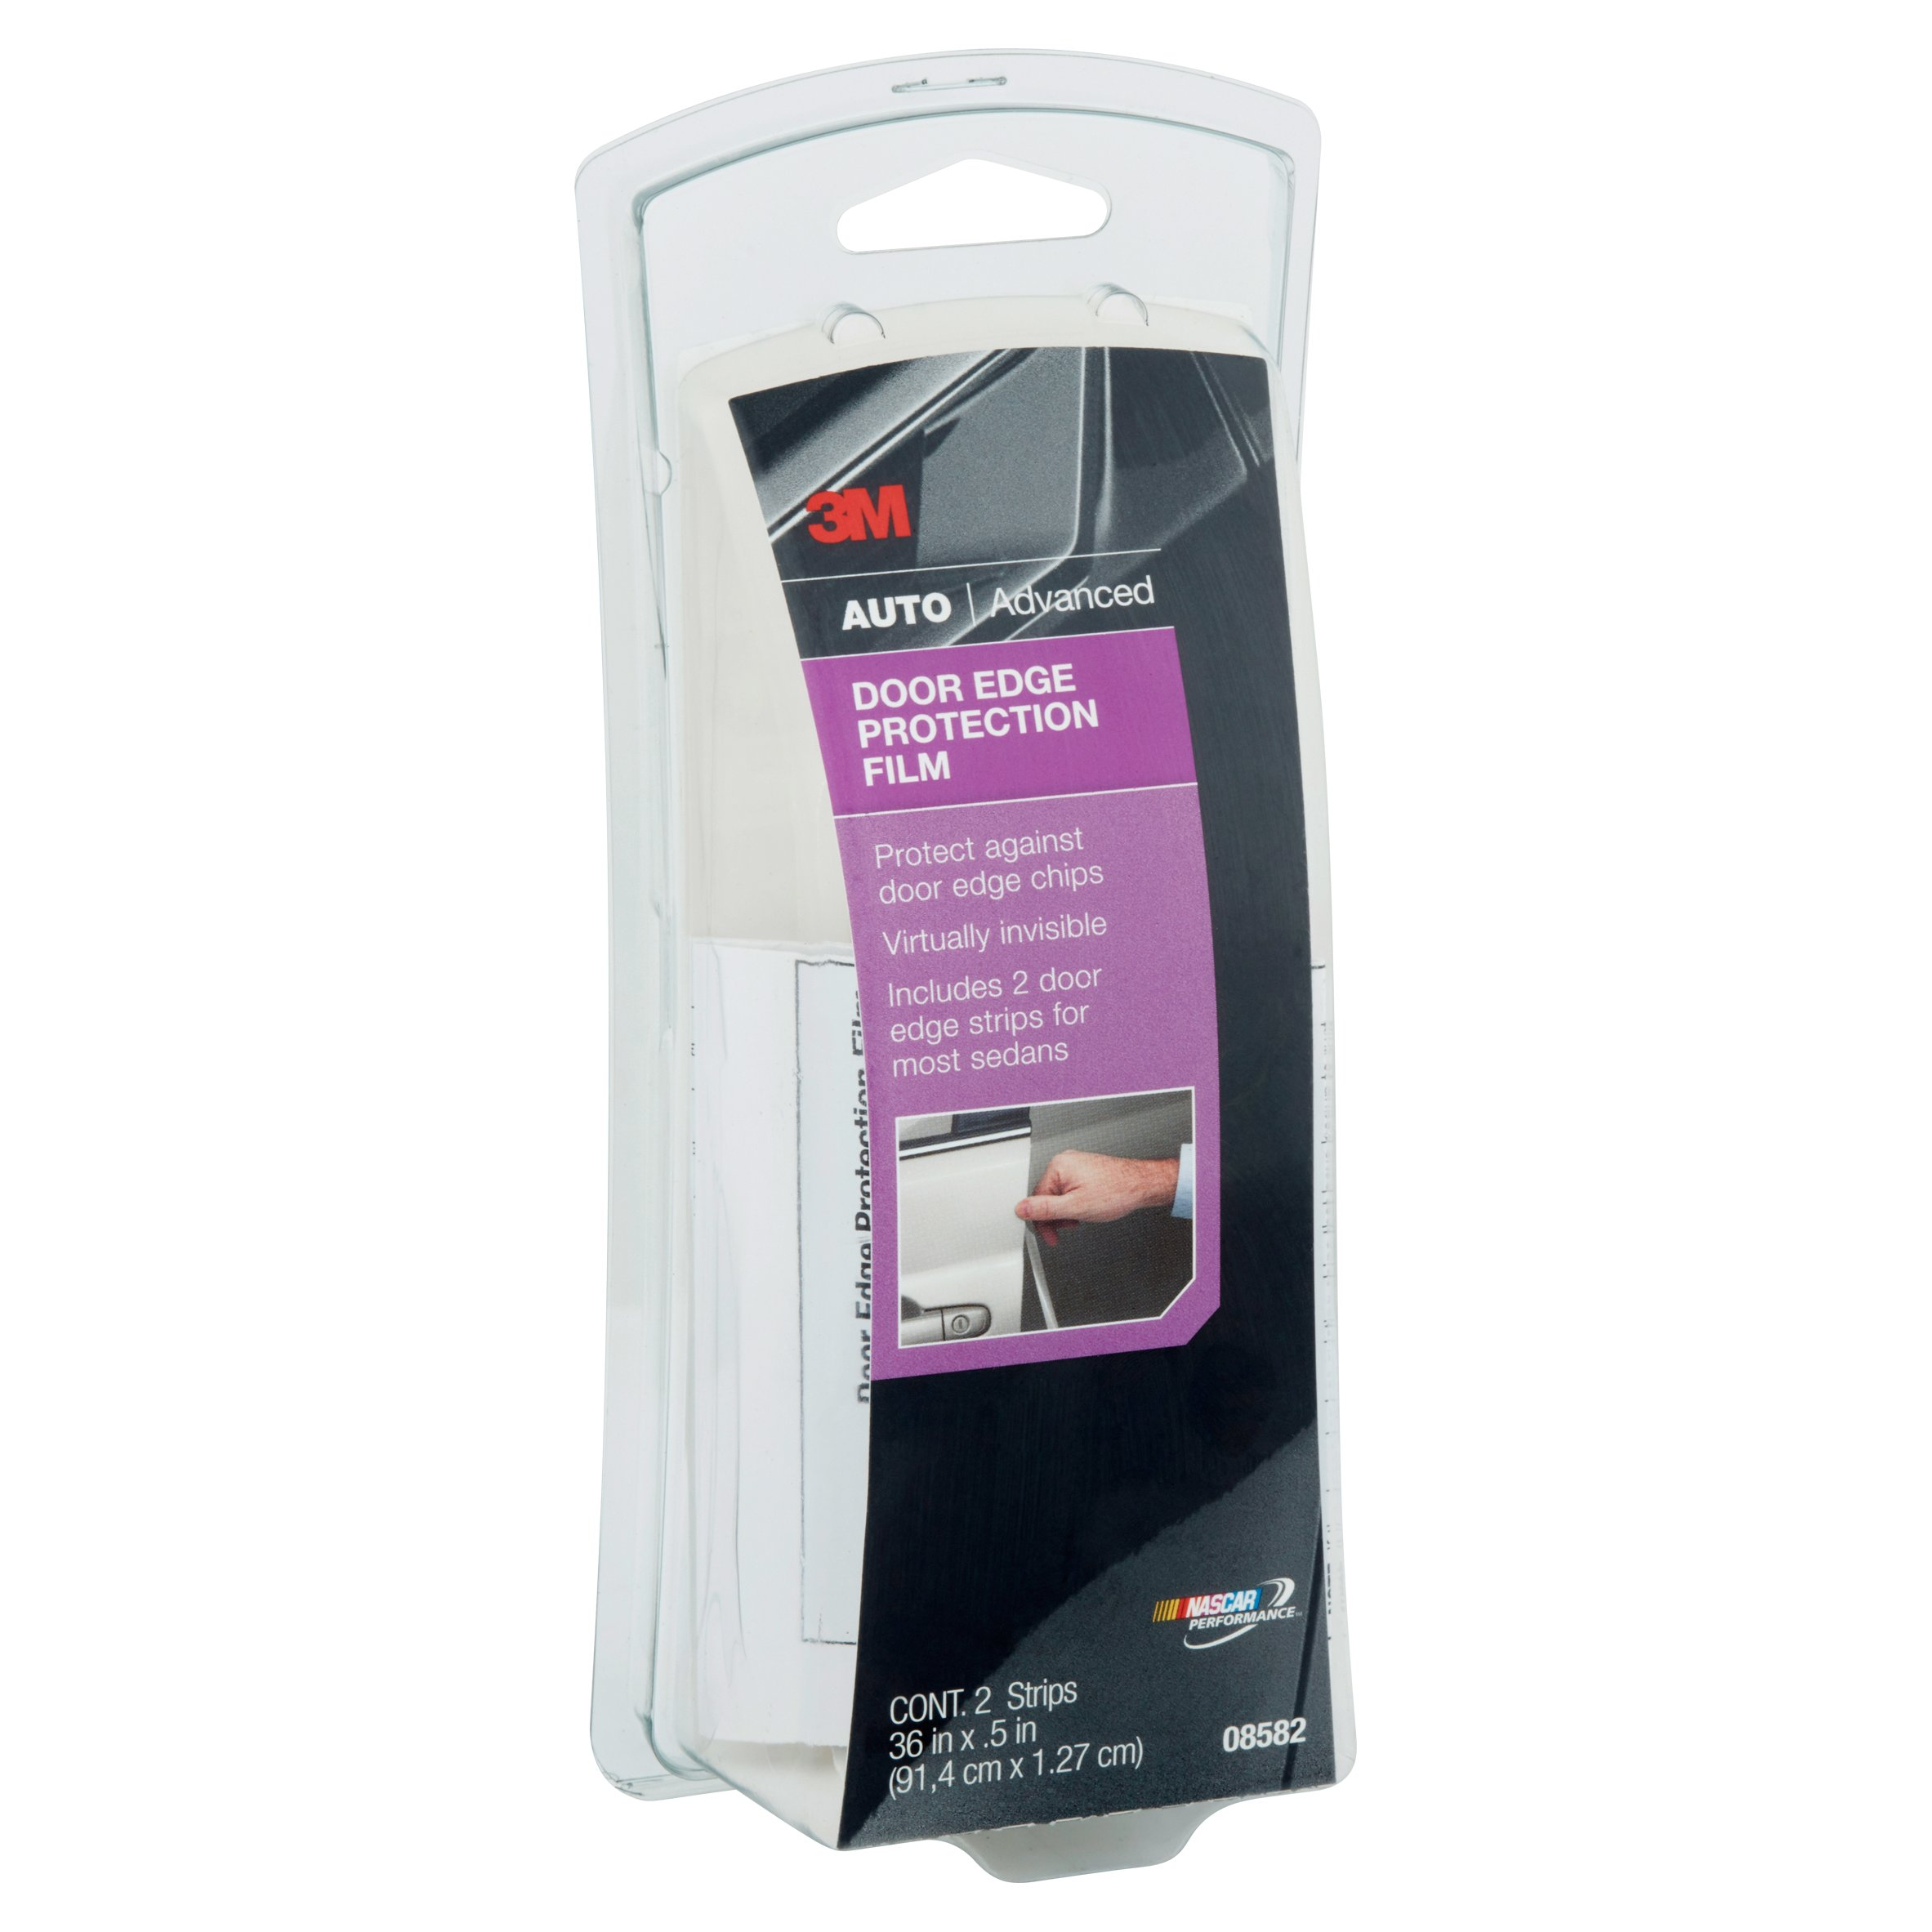 3M Door Edge Protection Film - Walmart.com